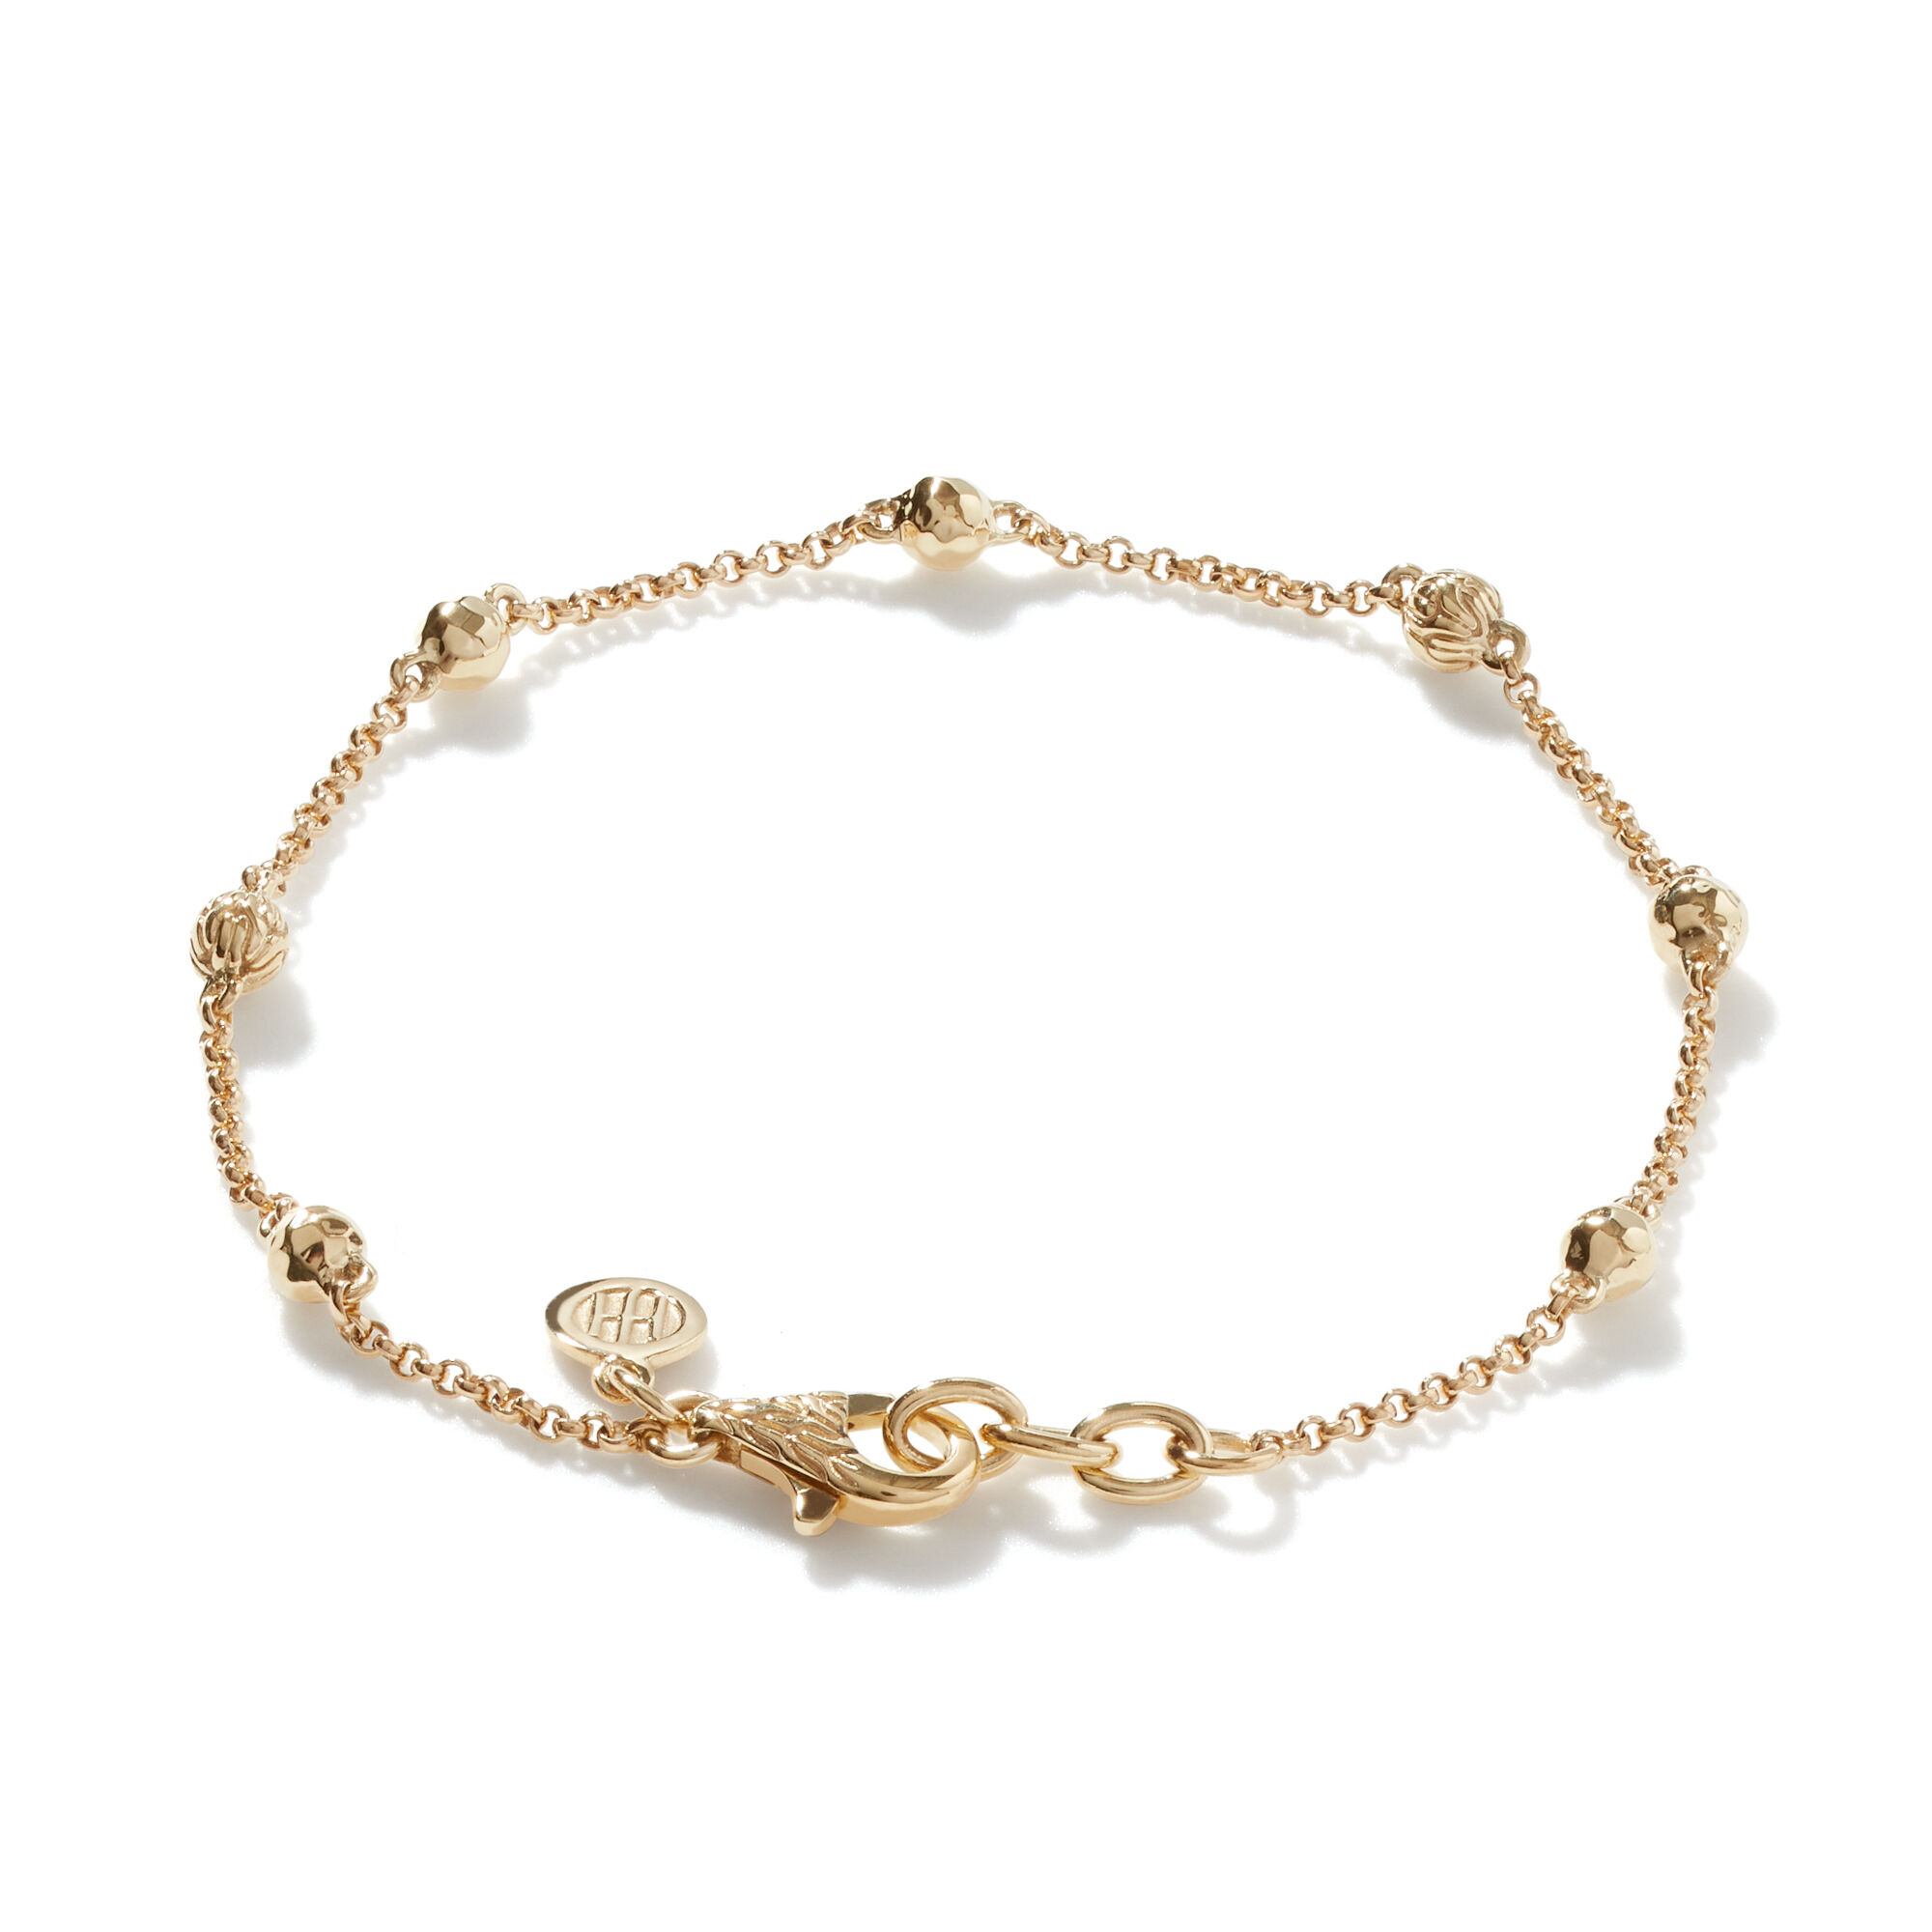 Classic Chain Bead Bracelet in Hammered 18K Gold, , large